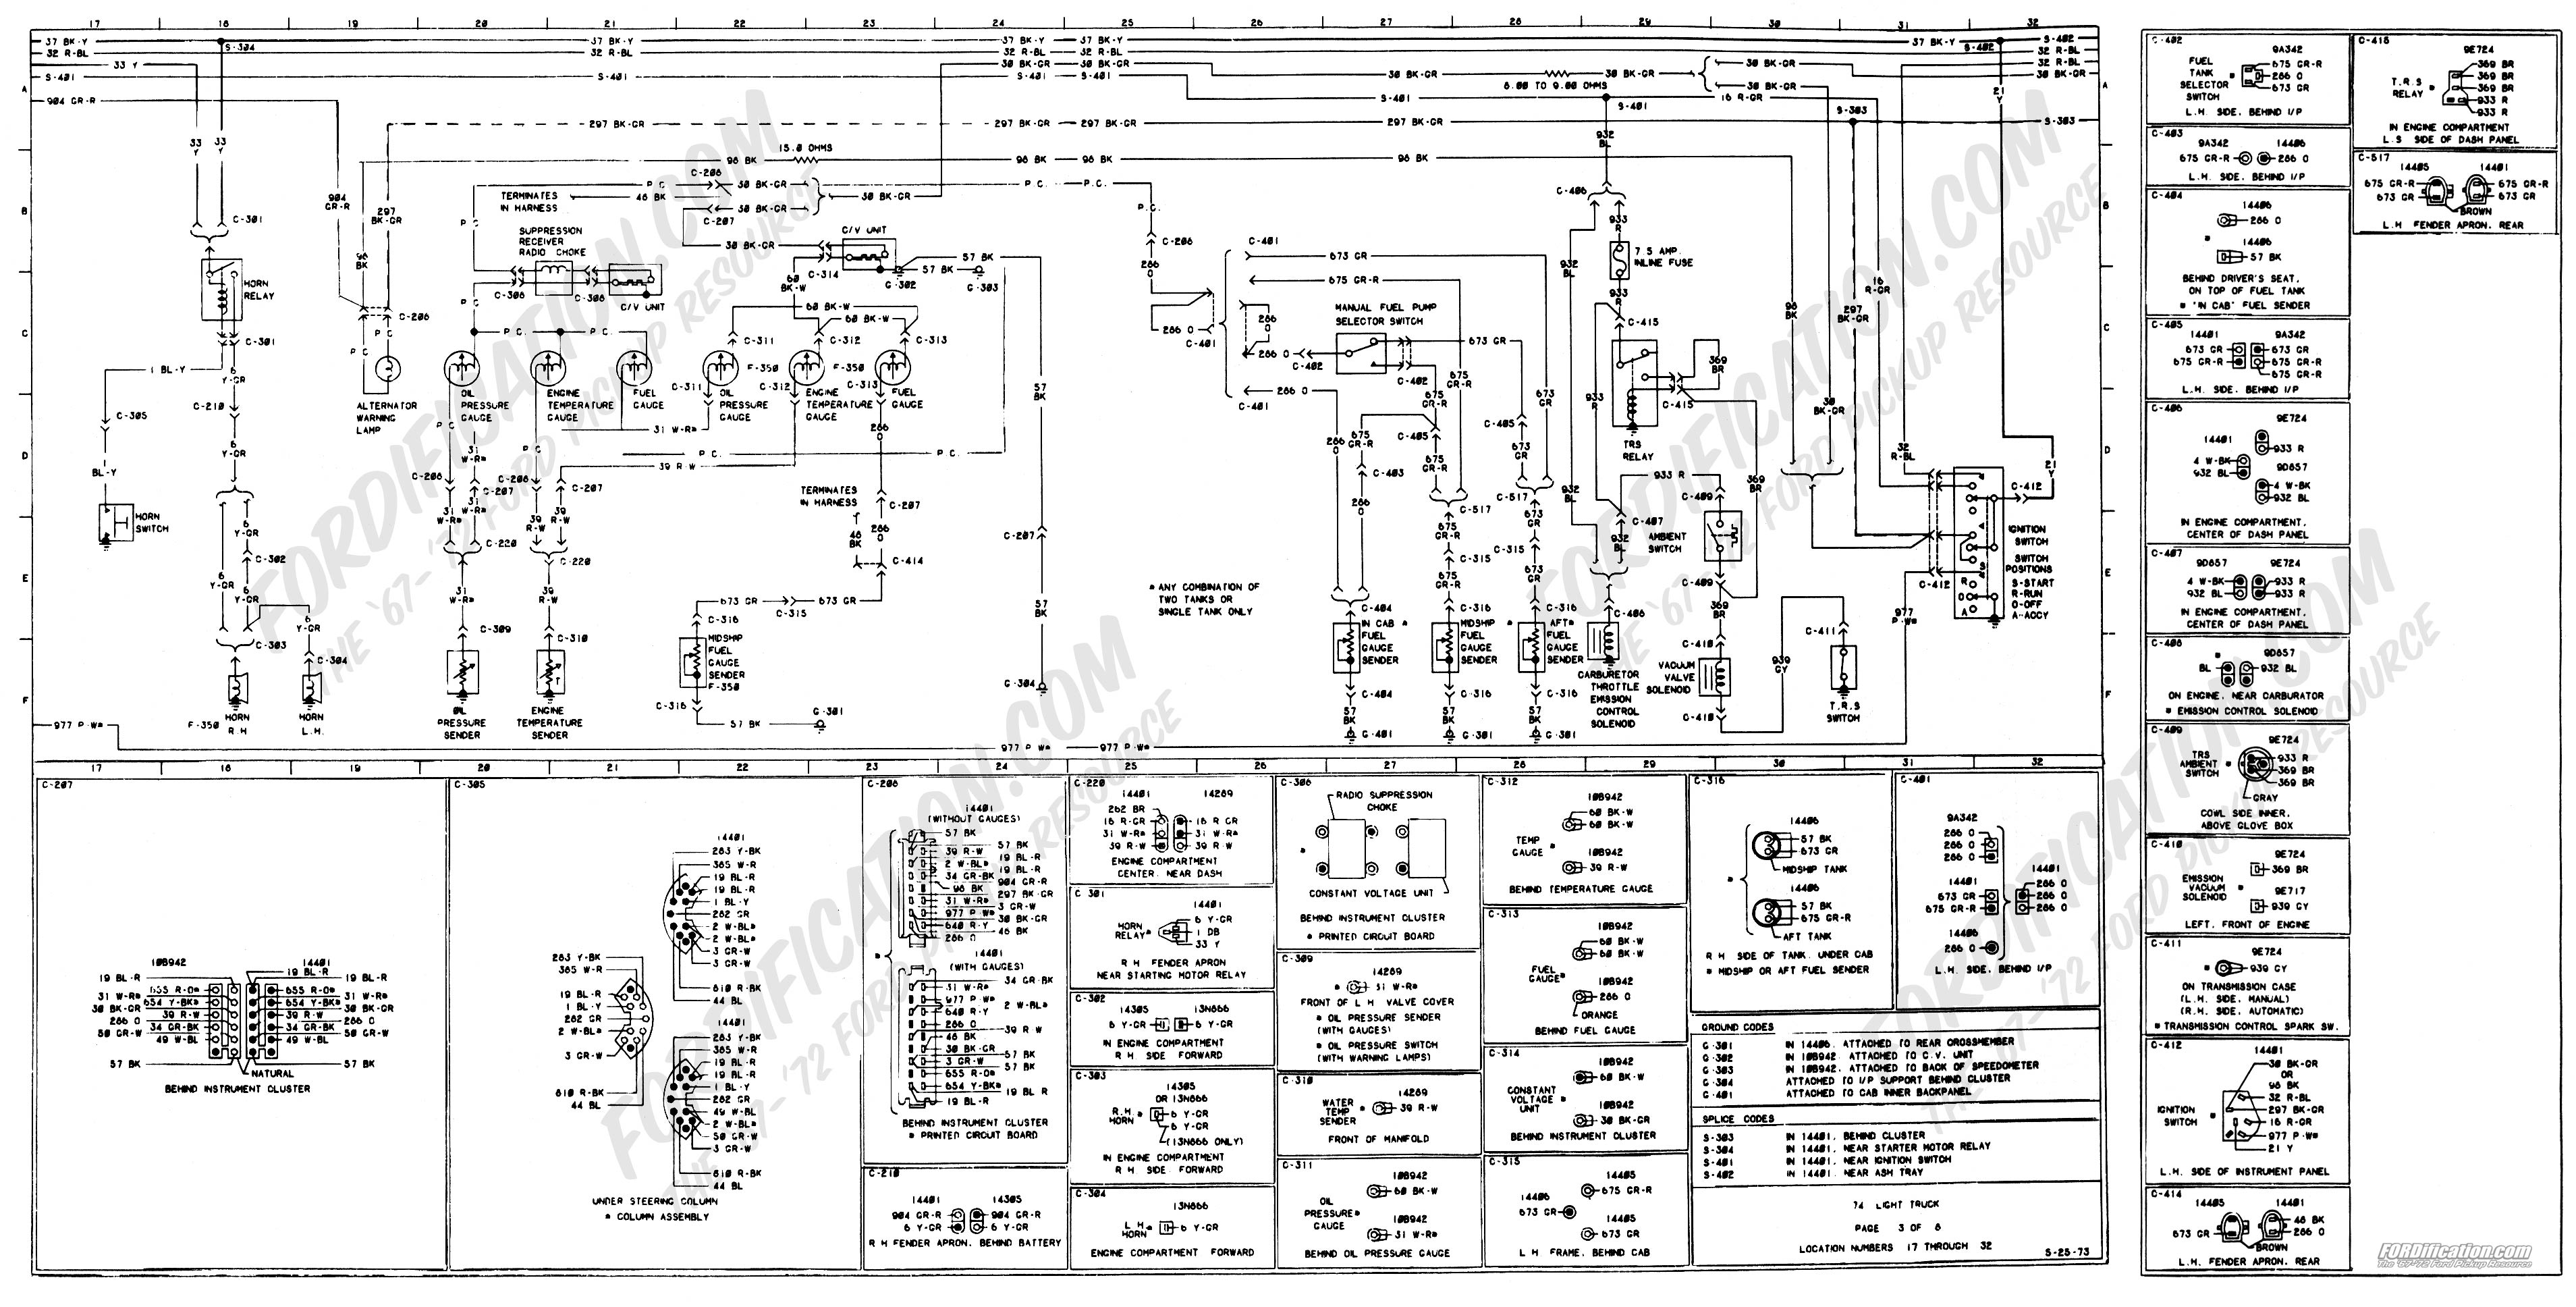 wiring_74master_3of8 1973 1979 ford truck wiring diagrams & schematics fordification net ford ltl 9000 wiring diagram at edmiracle.co